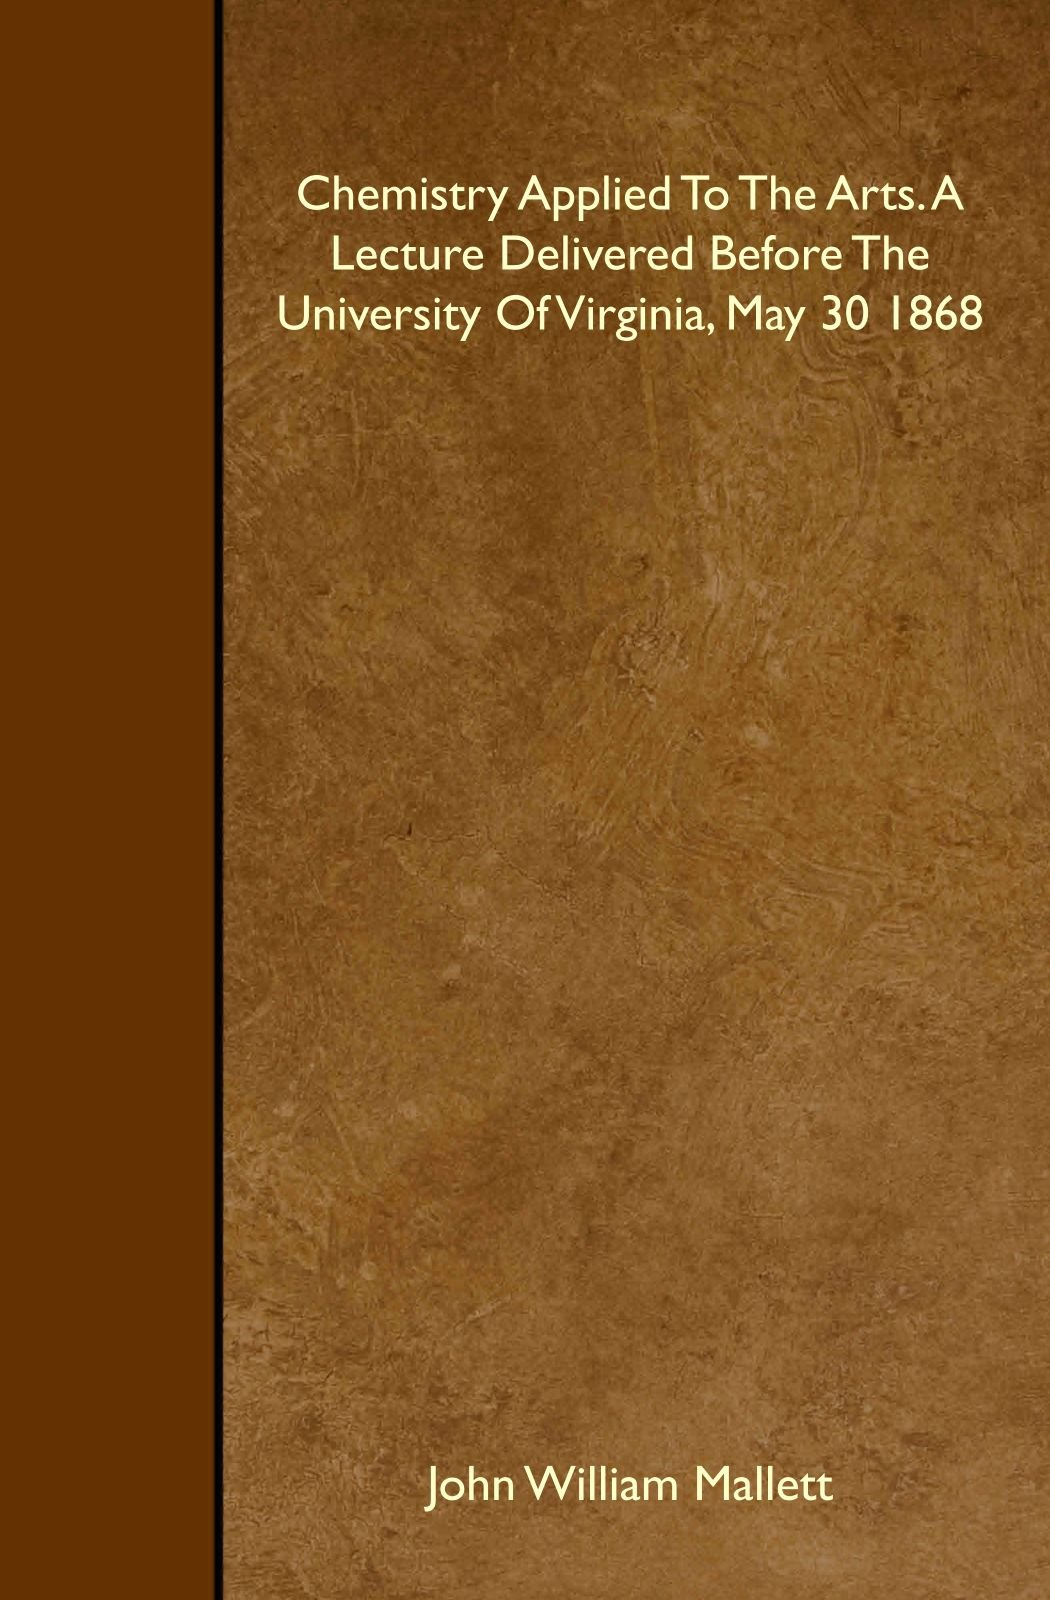 Read Online Chemistry Applied To The Arts. A Lecture Delivered Before The University Of Virginia, May 30 1868 ebook